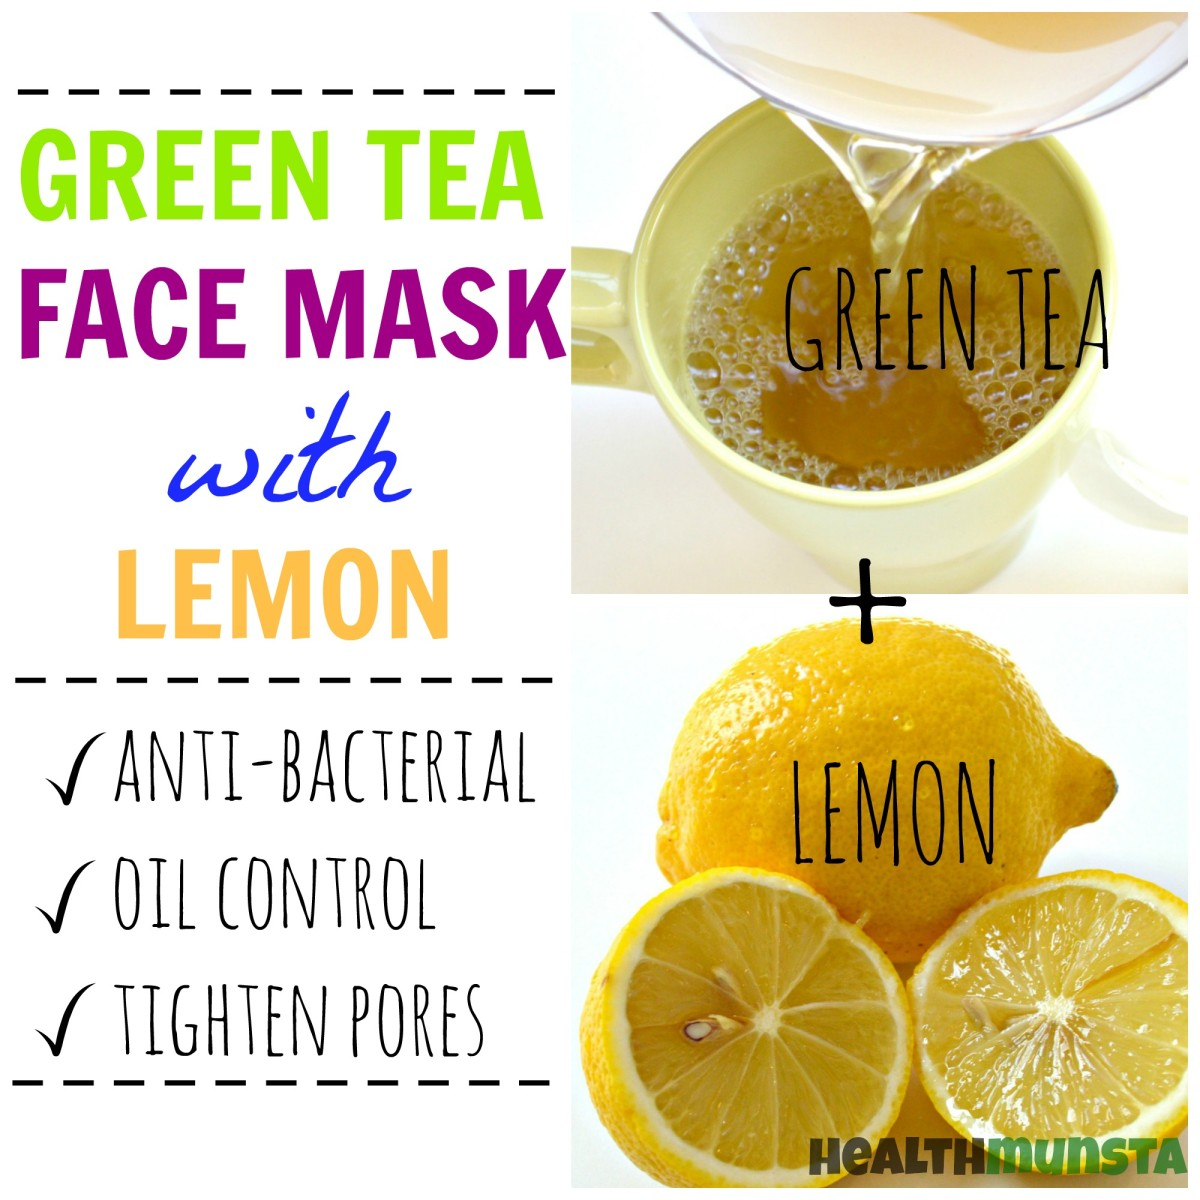 Combining the antibacterial goodness of lemon and natural astringent properties of green tea, this green tea and lemon face mask will help keep acne away!